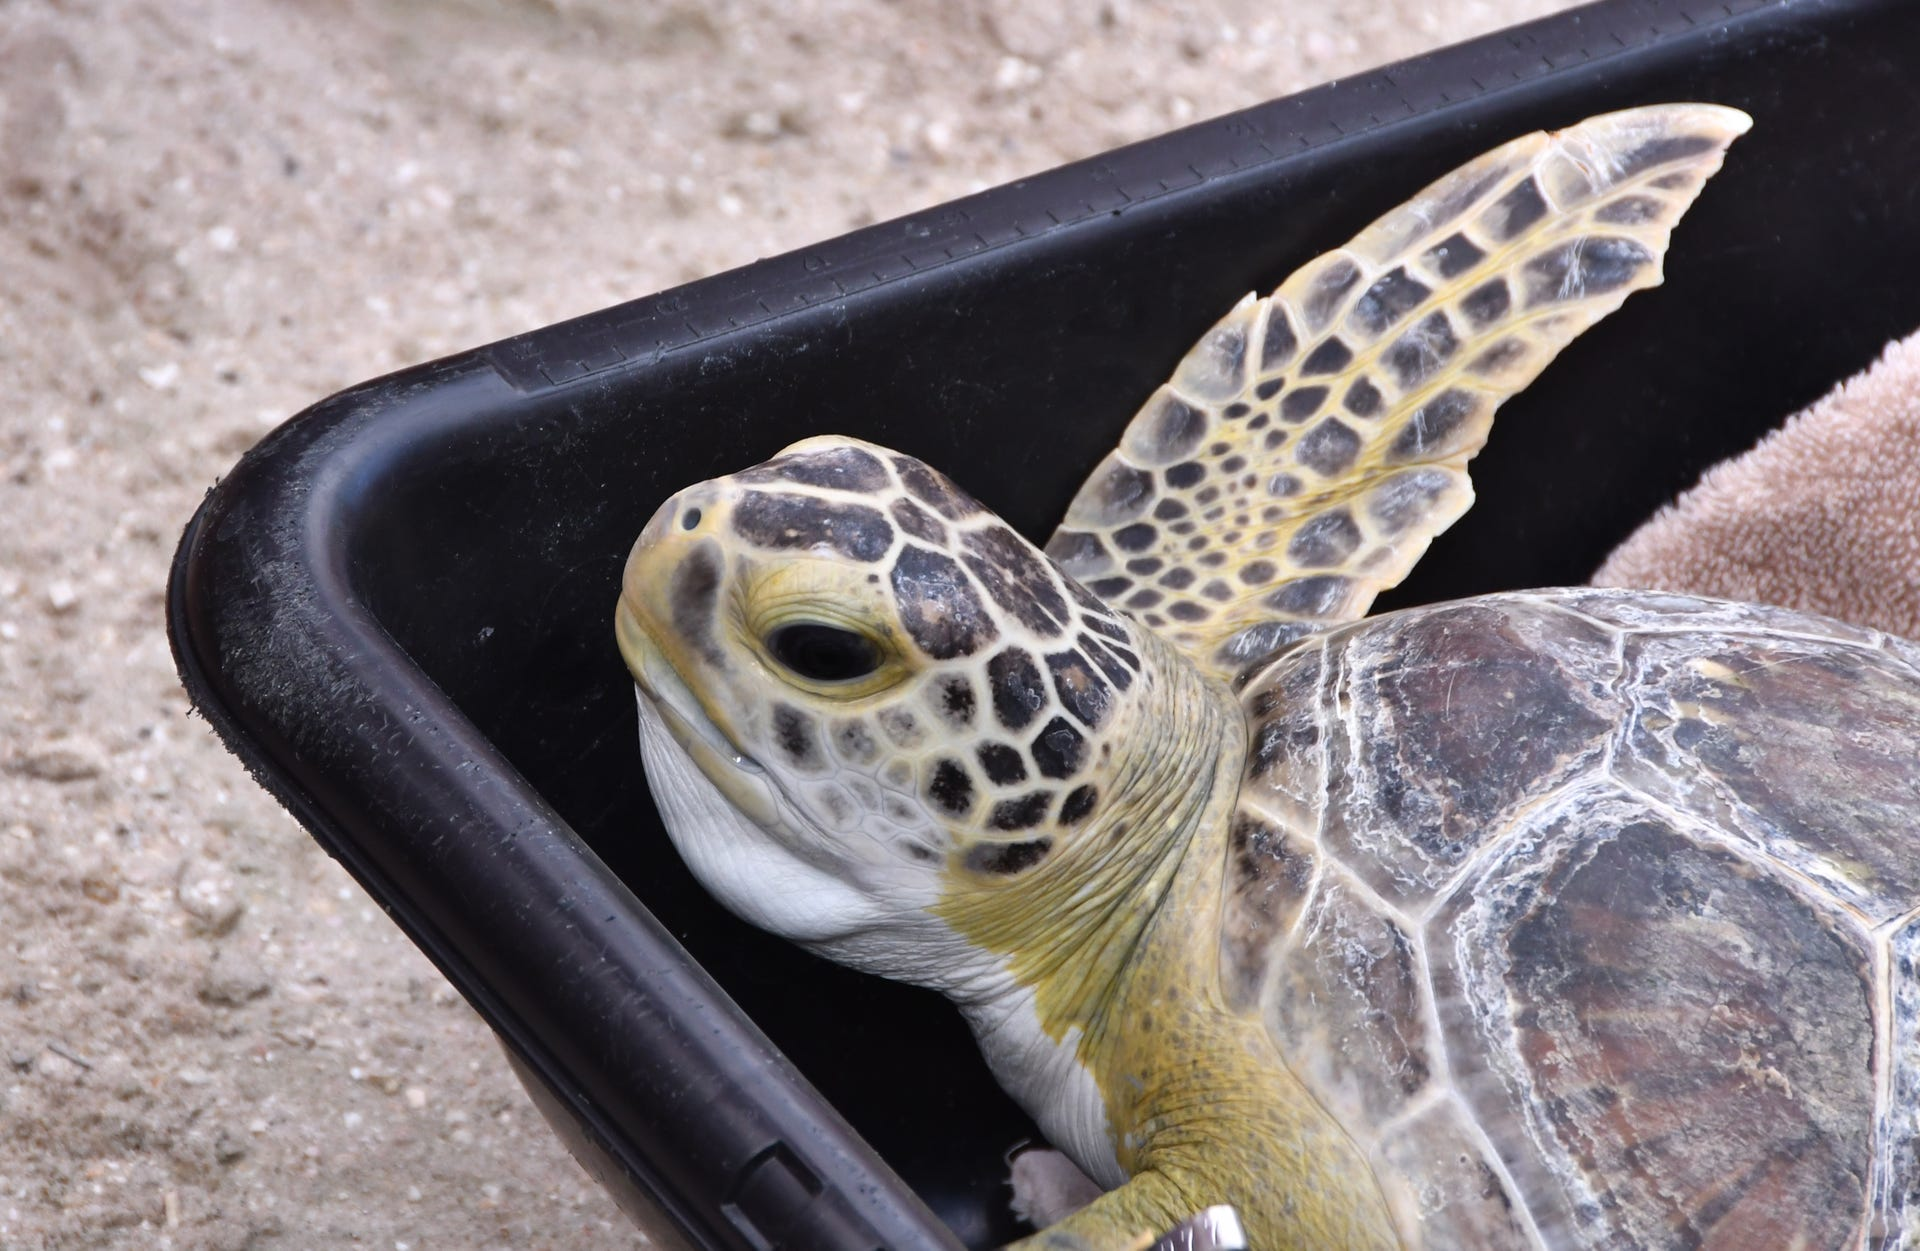 Two sea turtles released into the Indian River